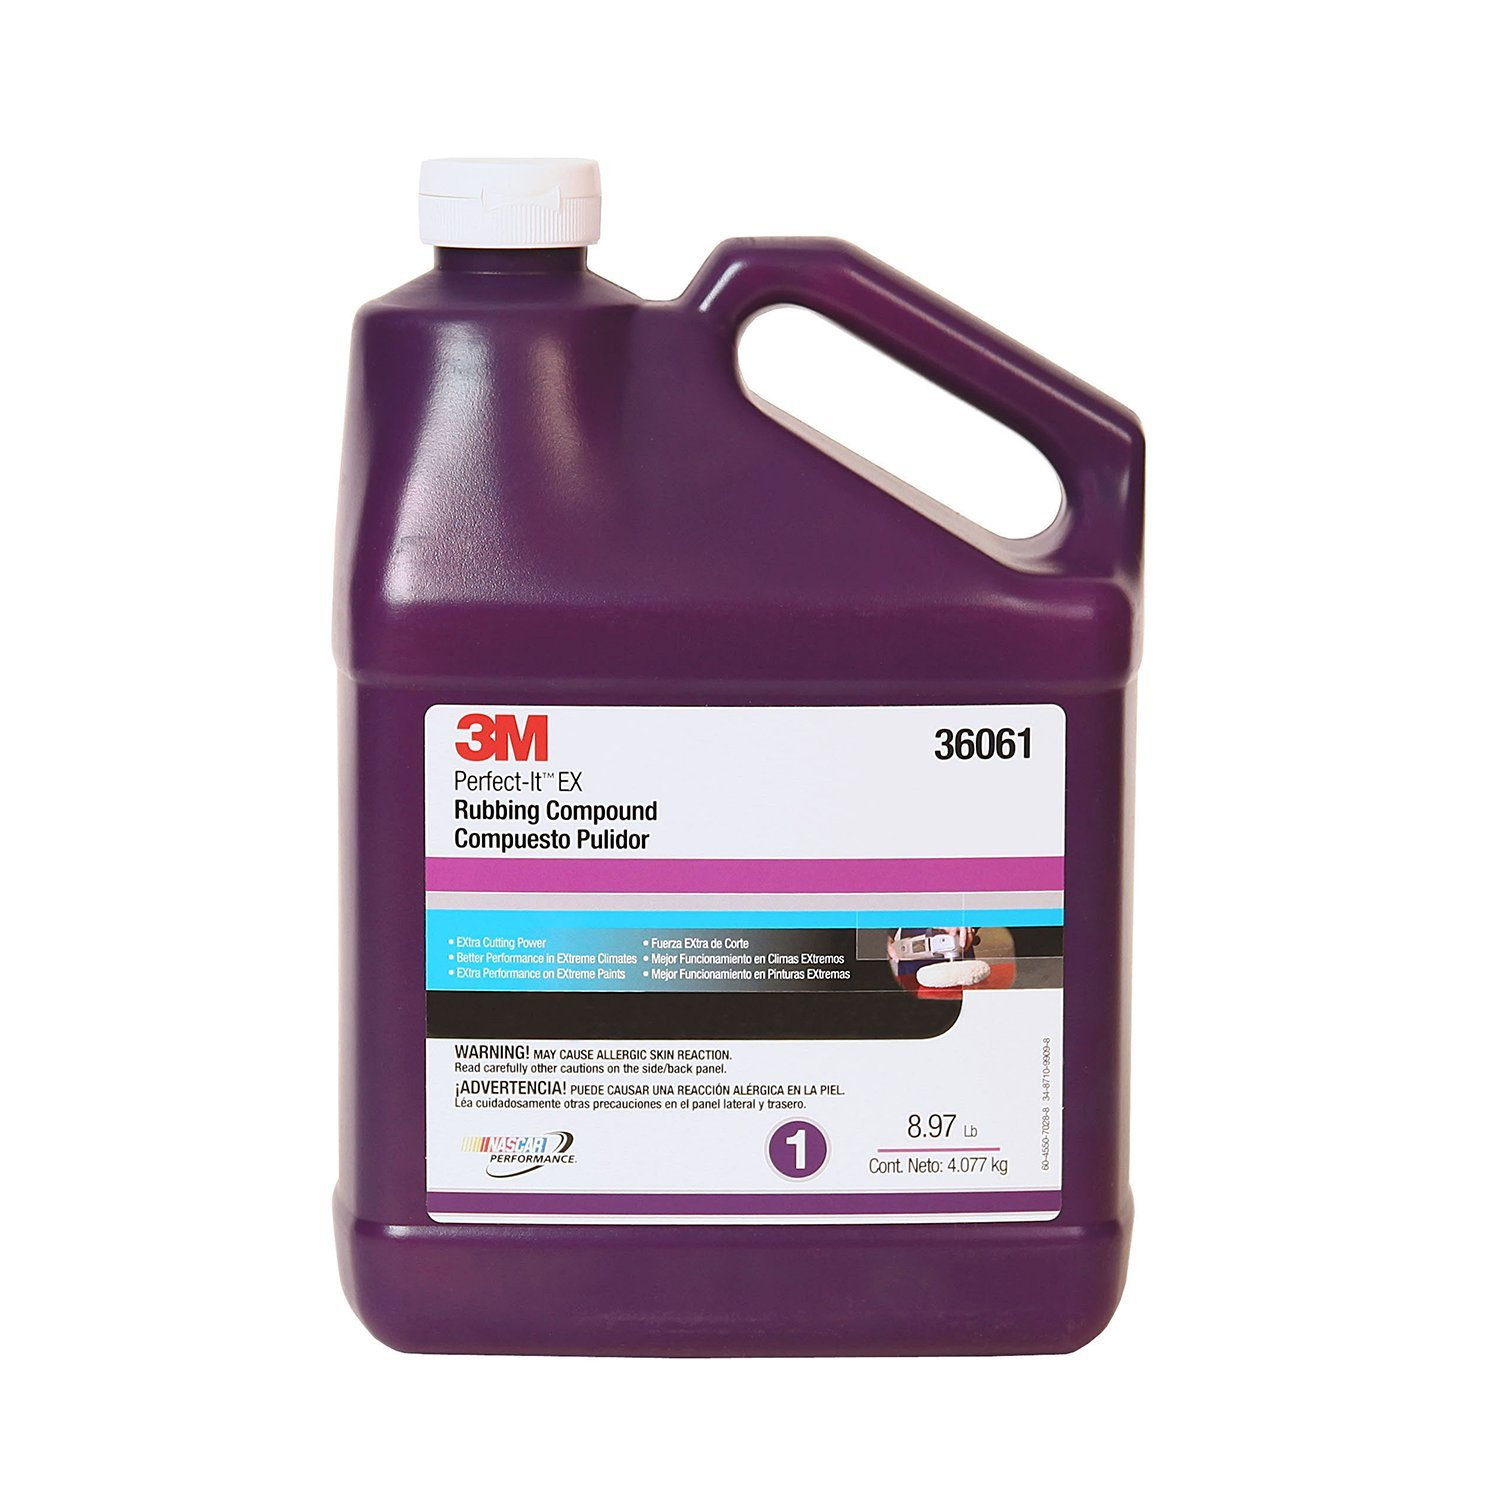 3M (36061) Perfect-It EX Rubbing Compound by Perfect-It